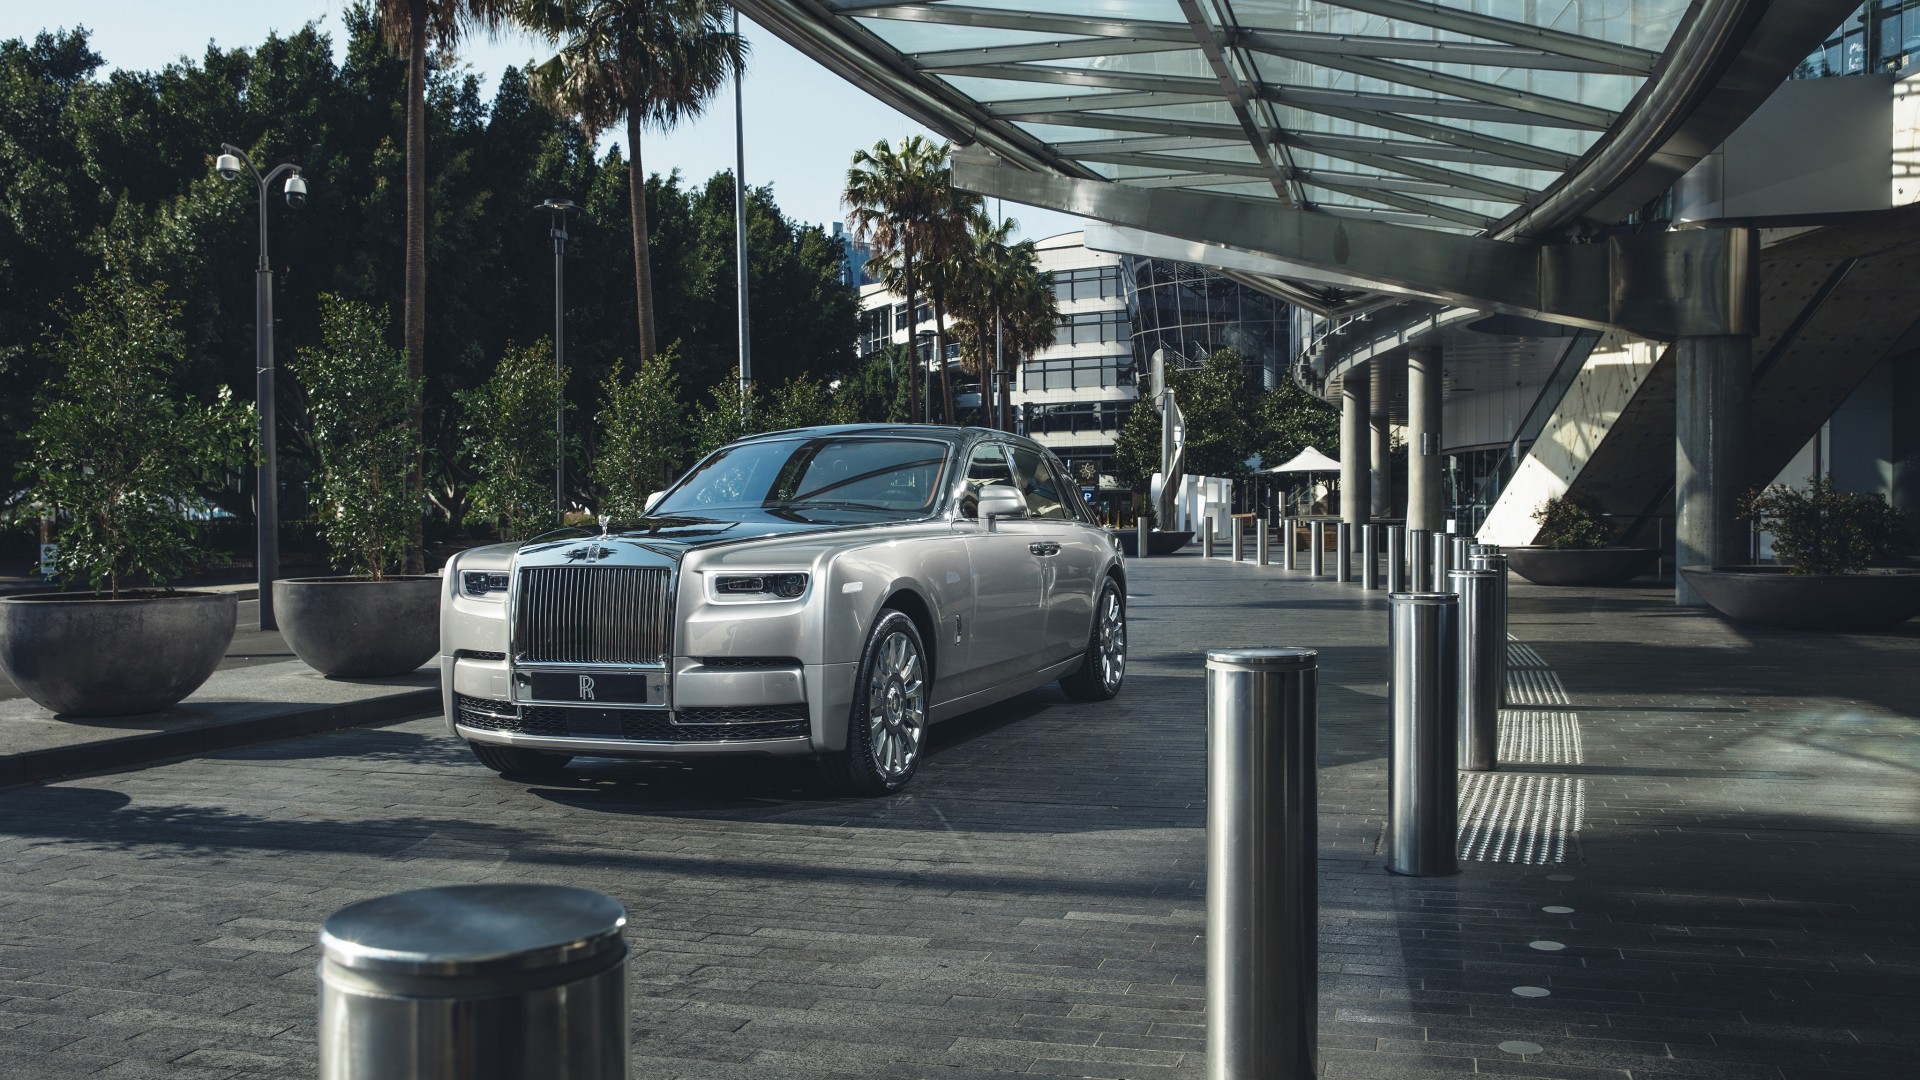 2017 Rolls Royce Phantom 4k 3 Wallpaper Hd Car Wallpapers Id 8790